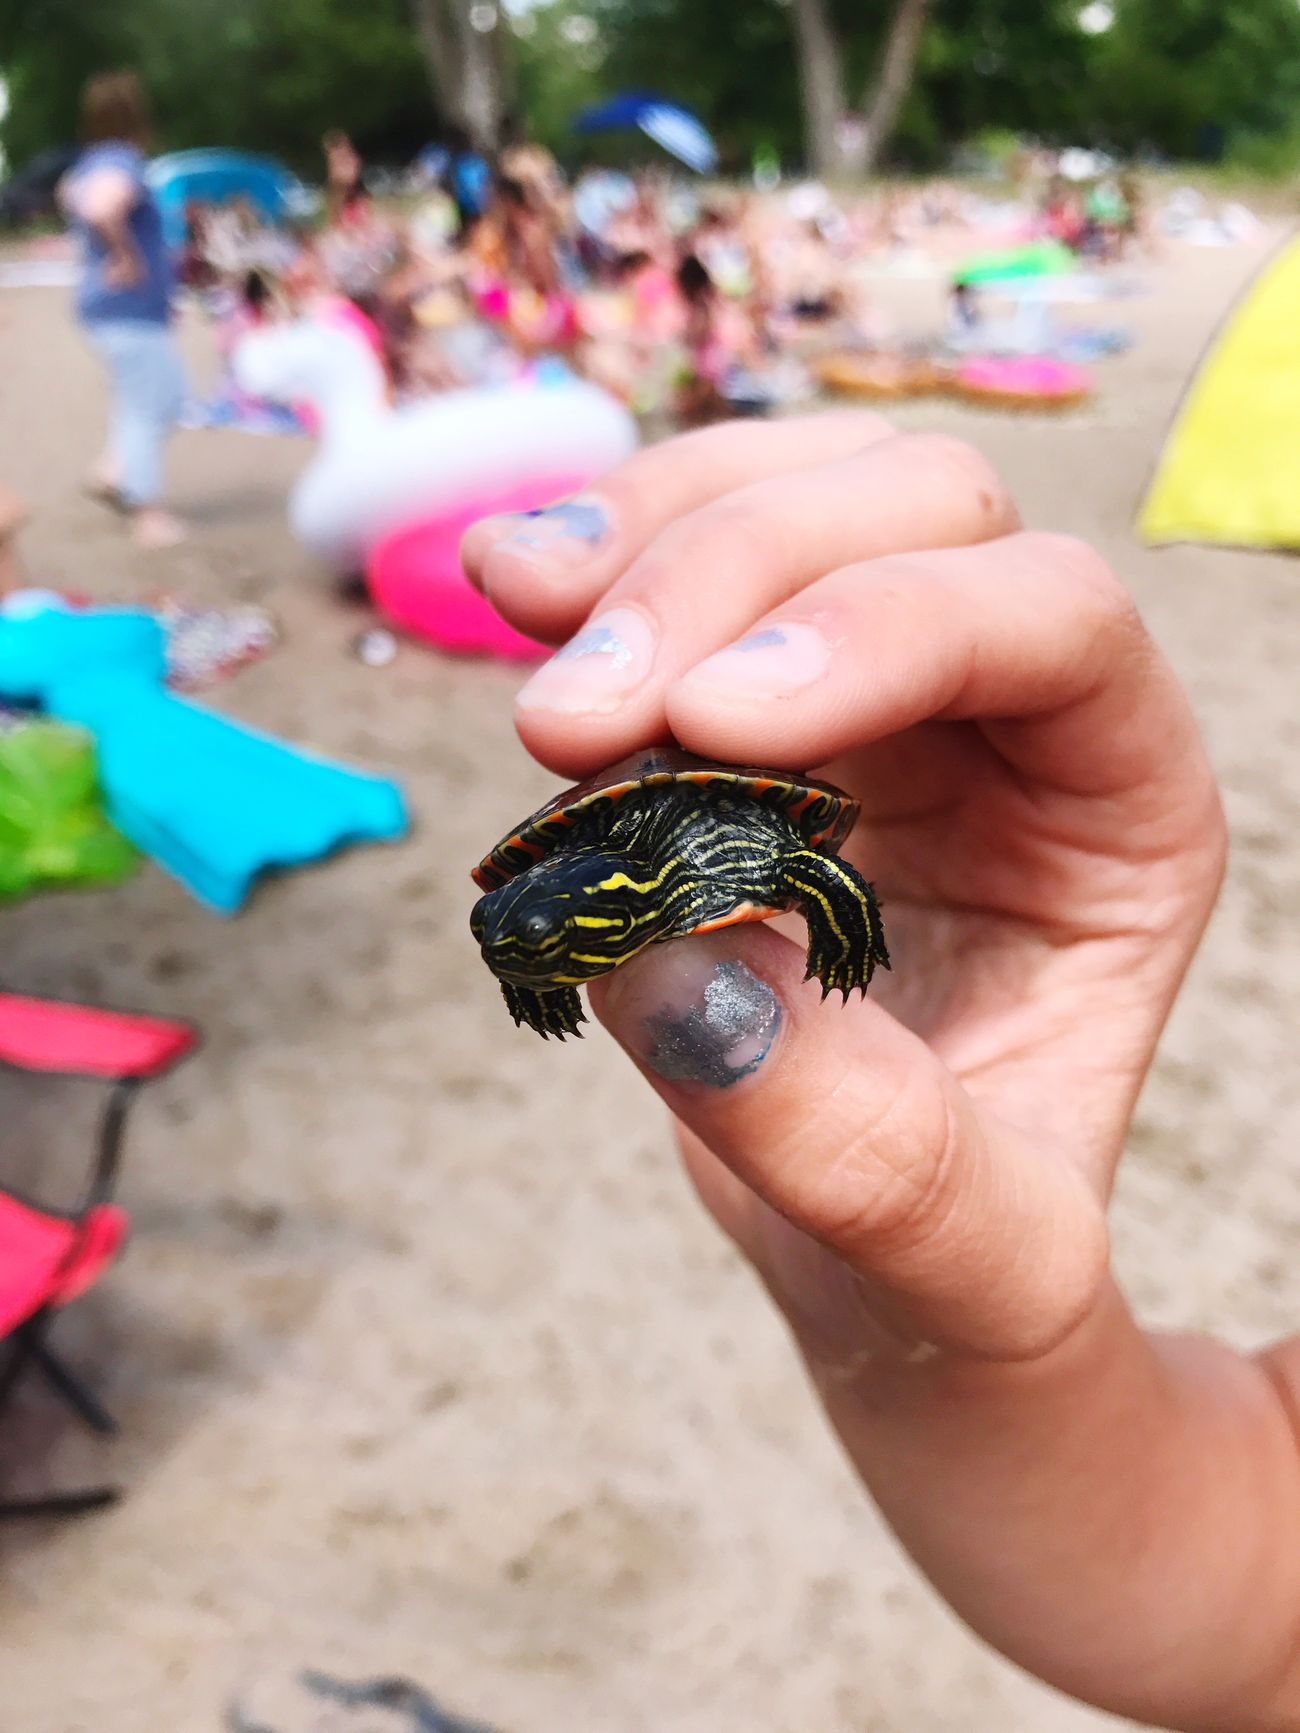 I found a baby painted turtle. I was tempted to keep it but I put it back in the water. He was so cute! Human Hand Holding Animals In The Wild Outdoors One Animal Close-up Beach Baby Turtle Painted Turtle